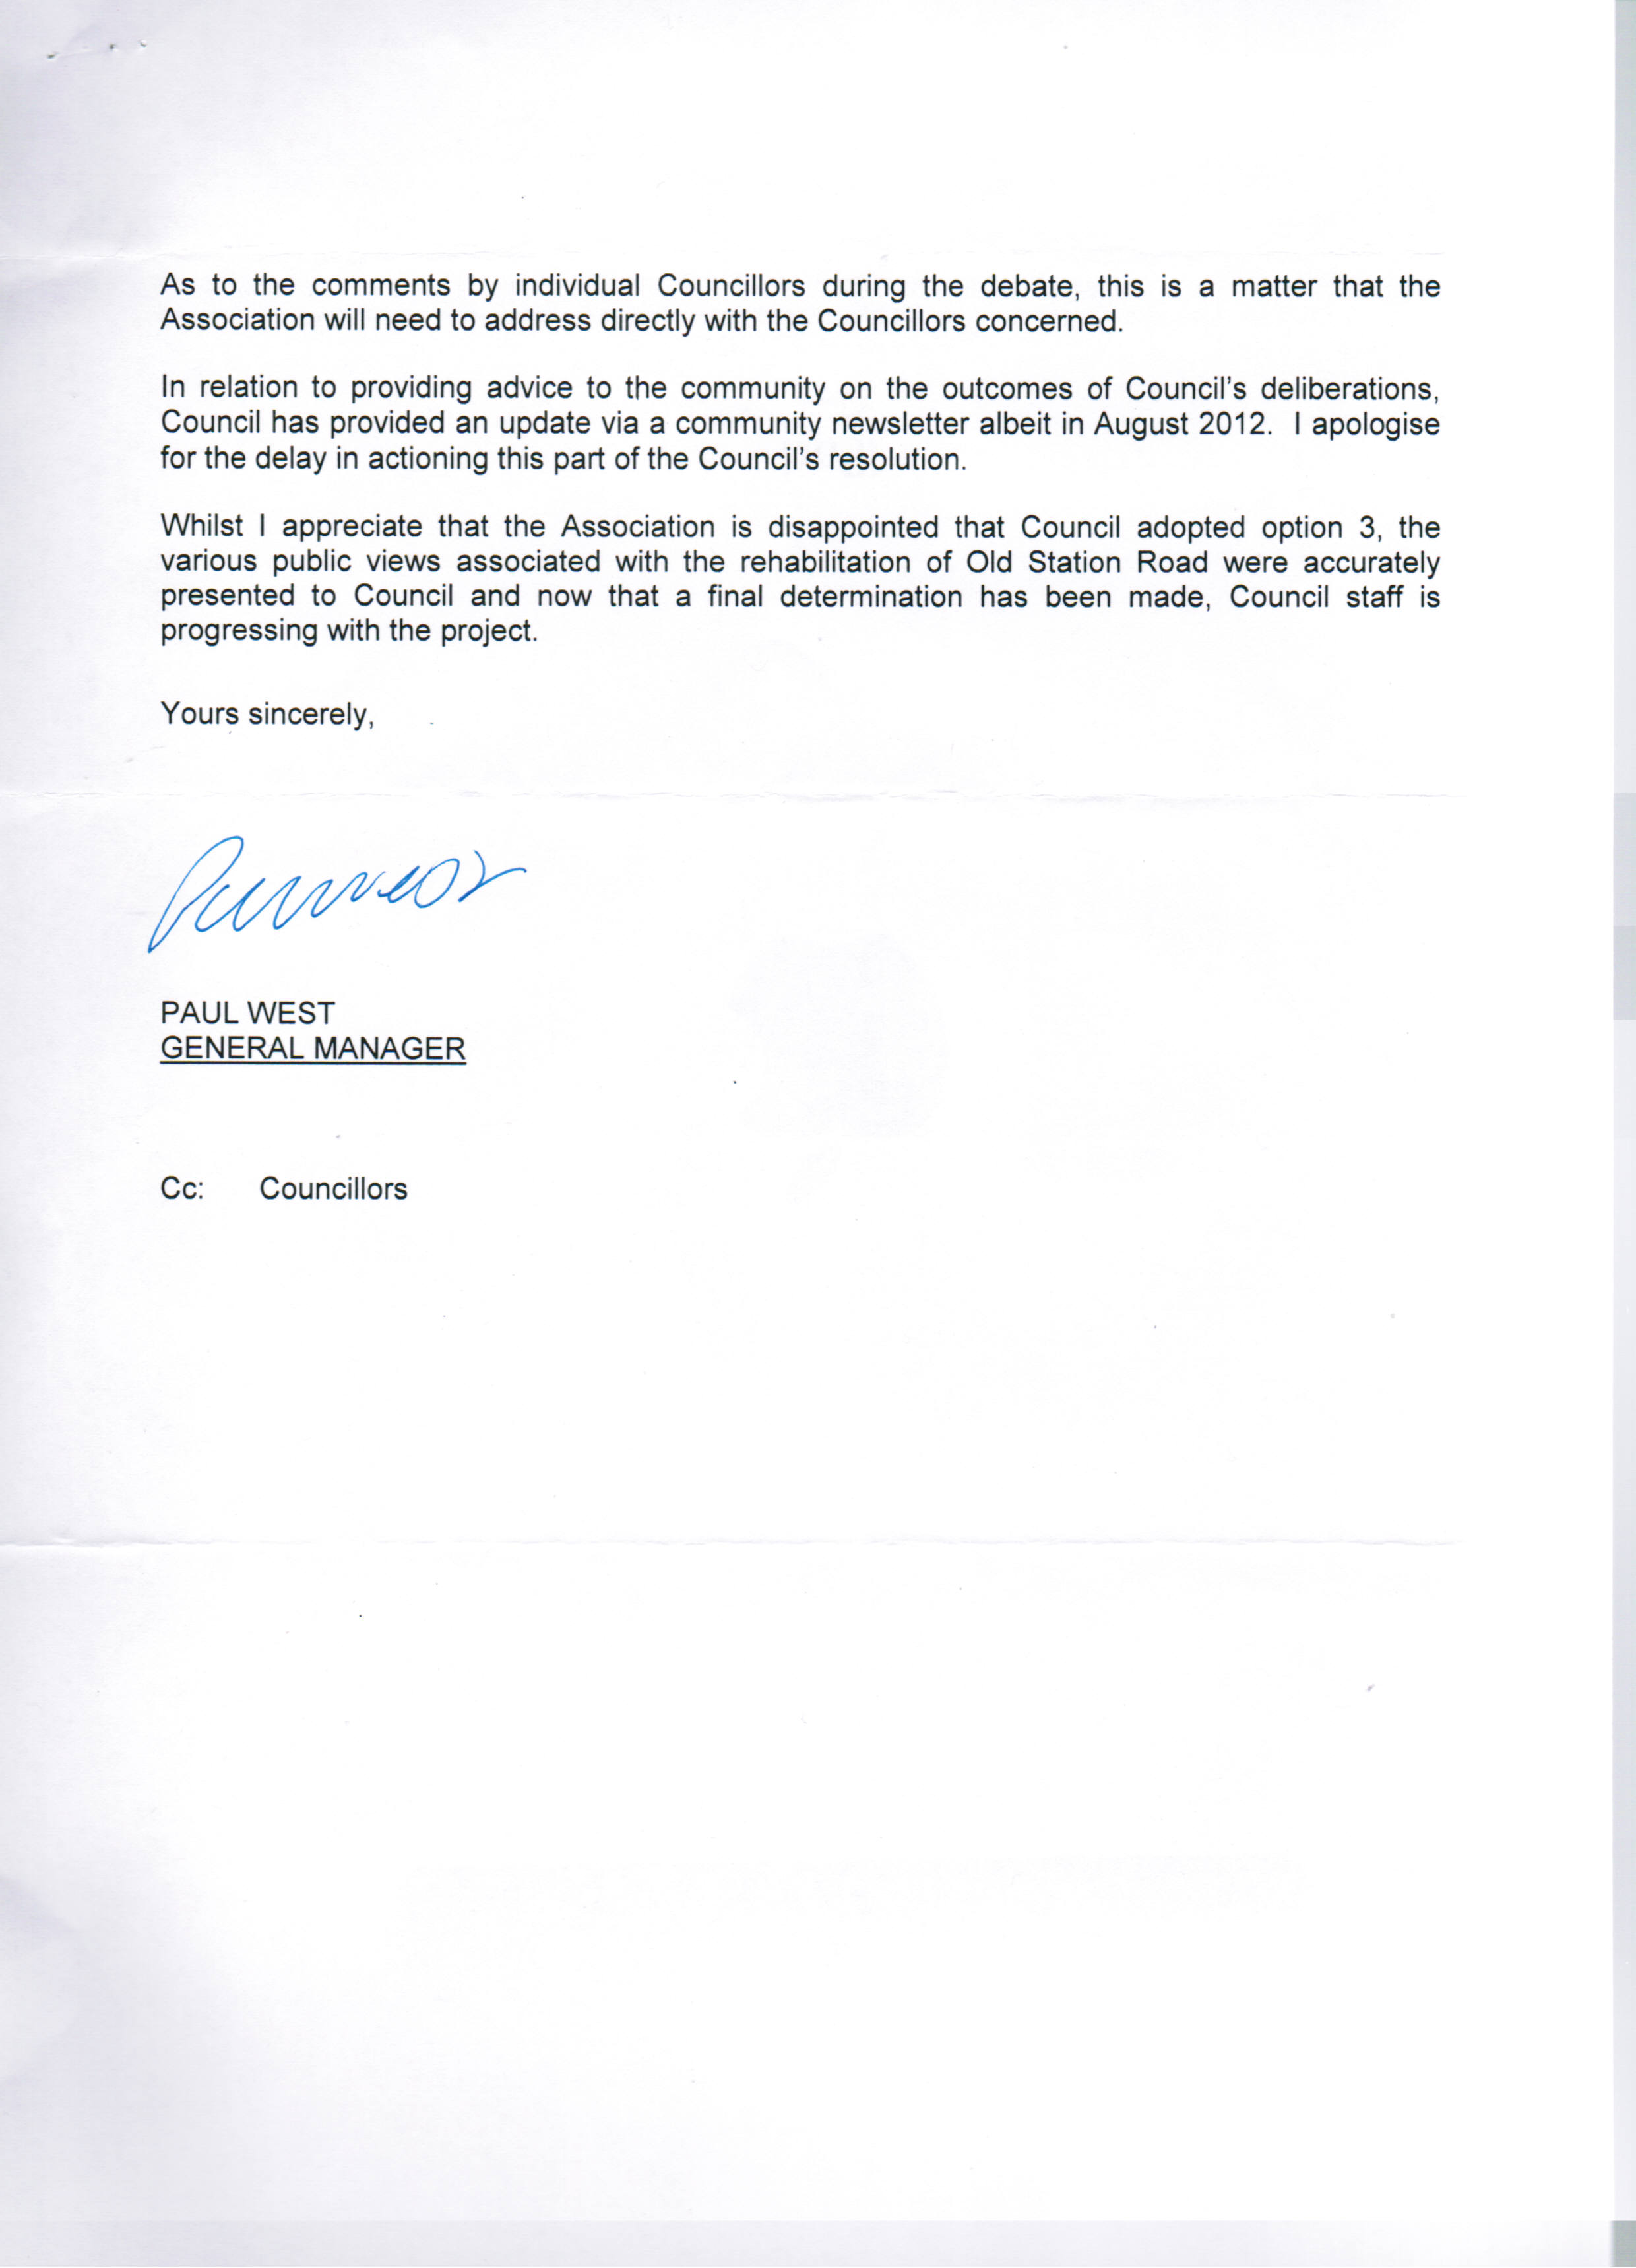 response letter re foreshore road letter from calsca coningham i am assuming that everyone knows the saga which is pretty well covered in previous posts we would be interested in your comments about mr west s response